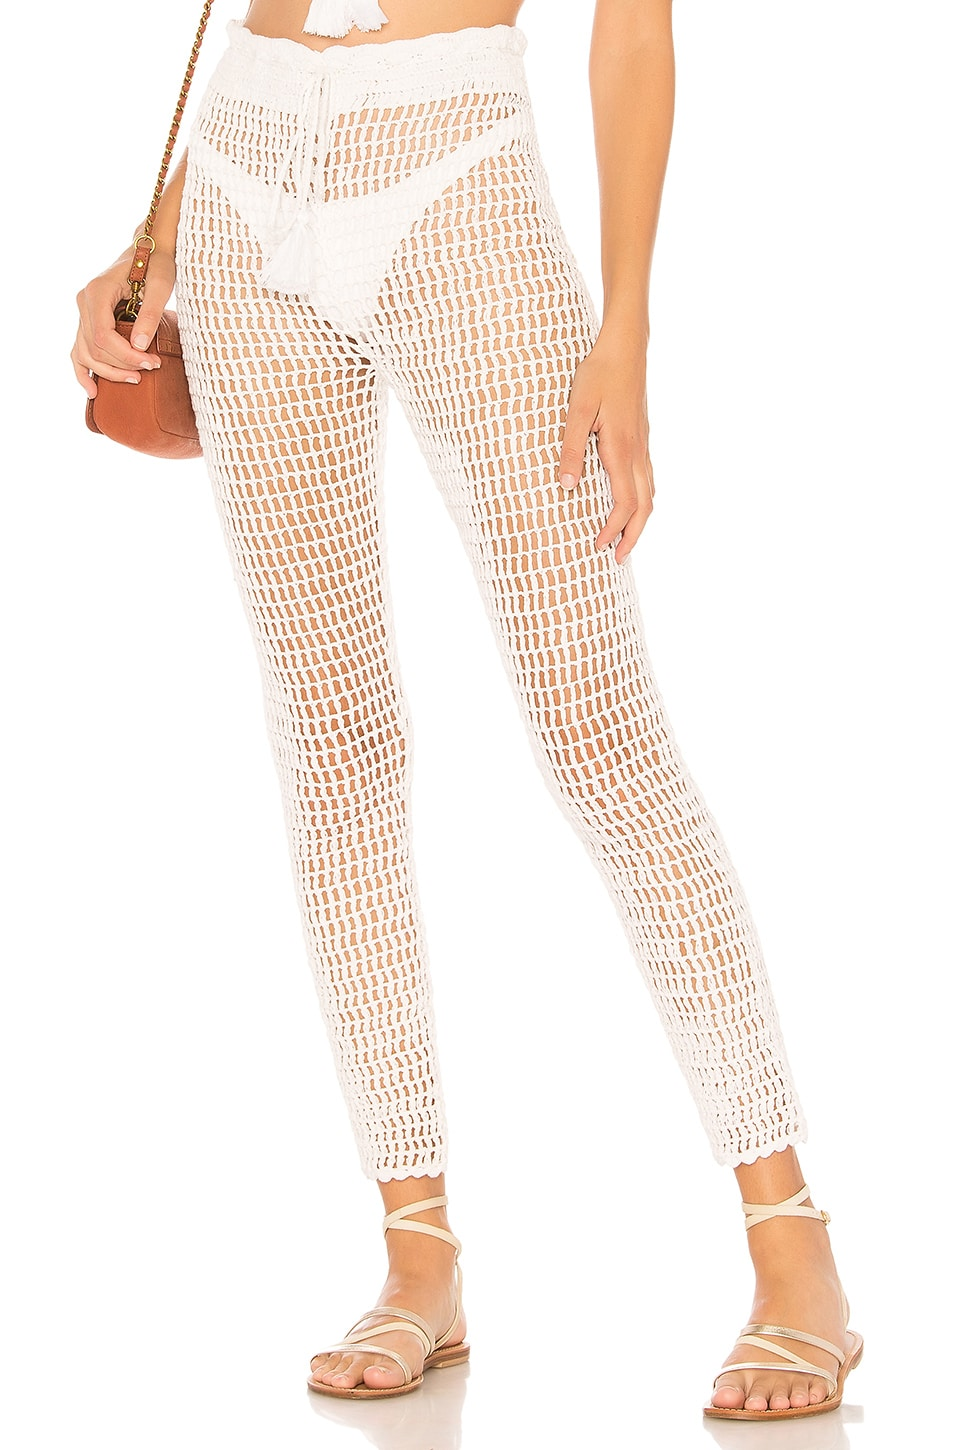 MAJORELLE Hilary Pant in White